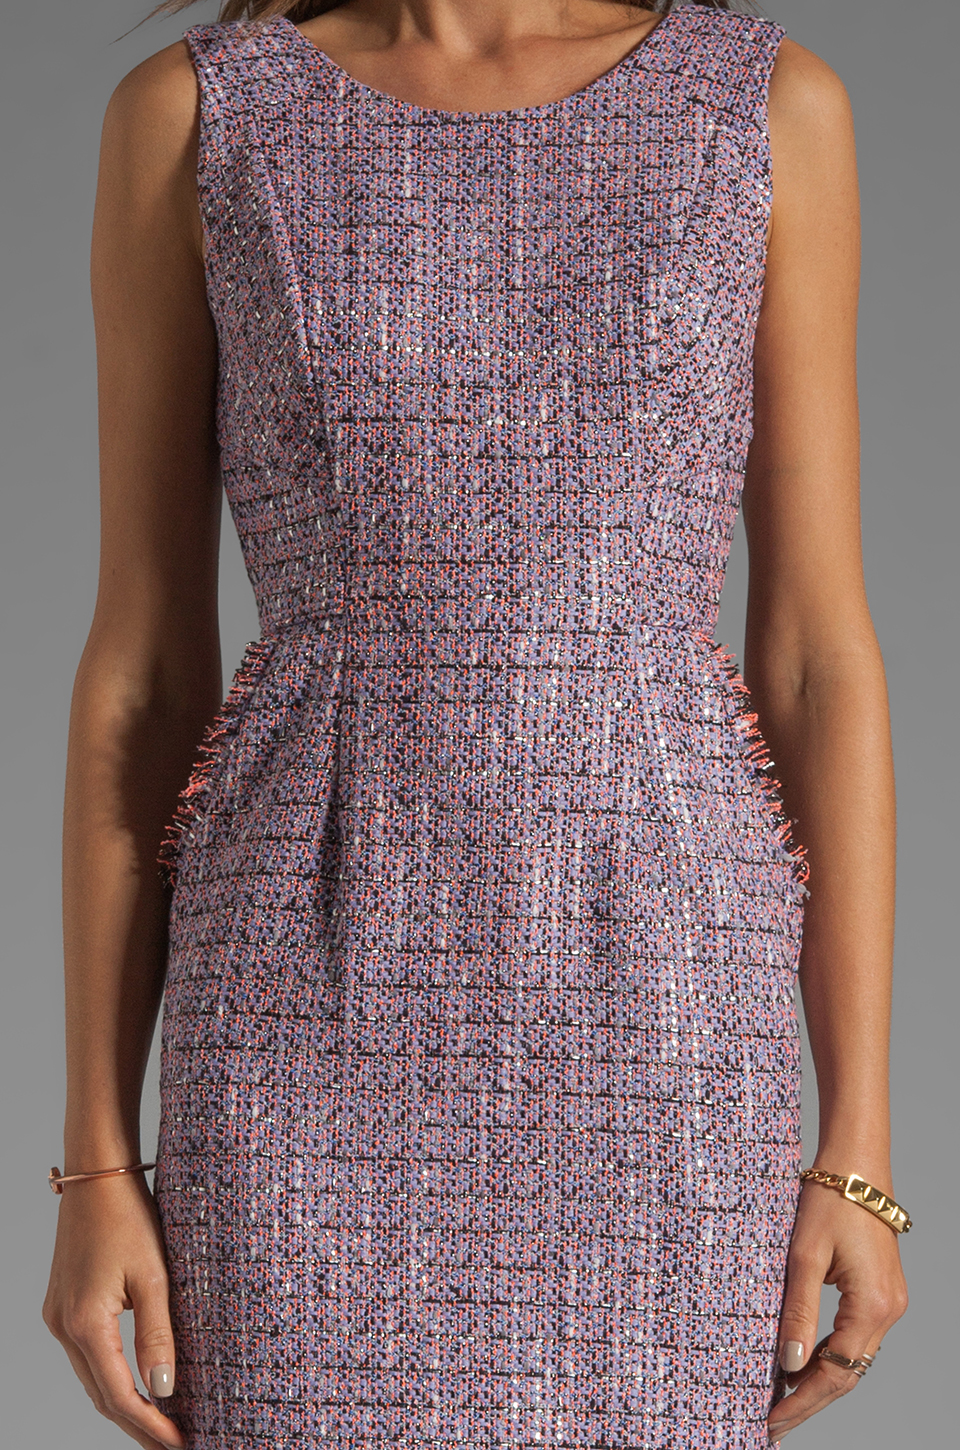 Shoshanna Mika Sheath Dress in Lavender Multi